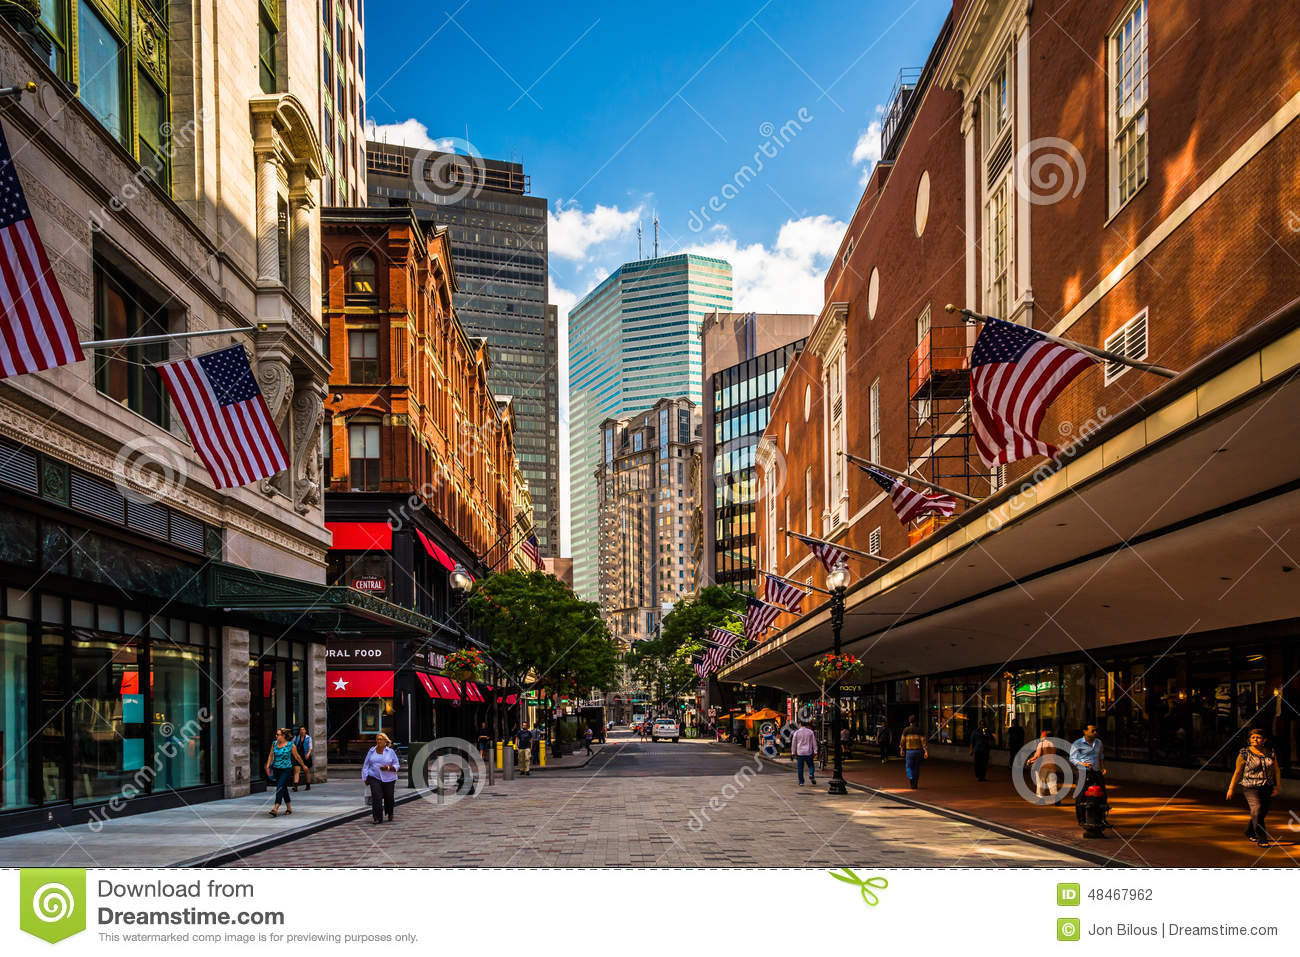 Downtown Crossing's modern stores are situated in aged, but beautifully architected buildings. Present-day cars drive along the brick streets, but you can almost imagine a young woman carrying a hatbox down the sidewalk back in